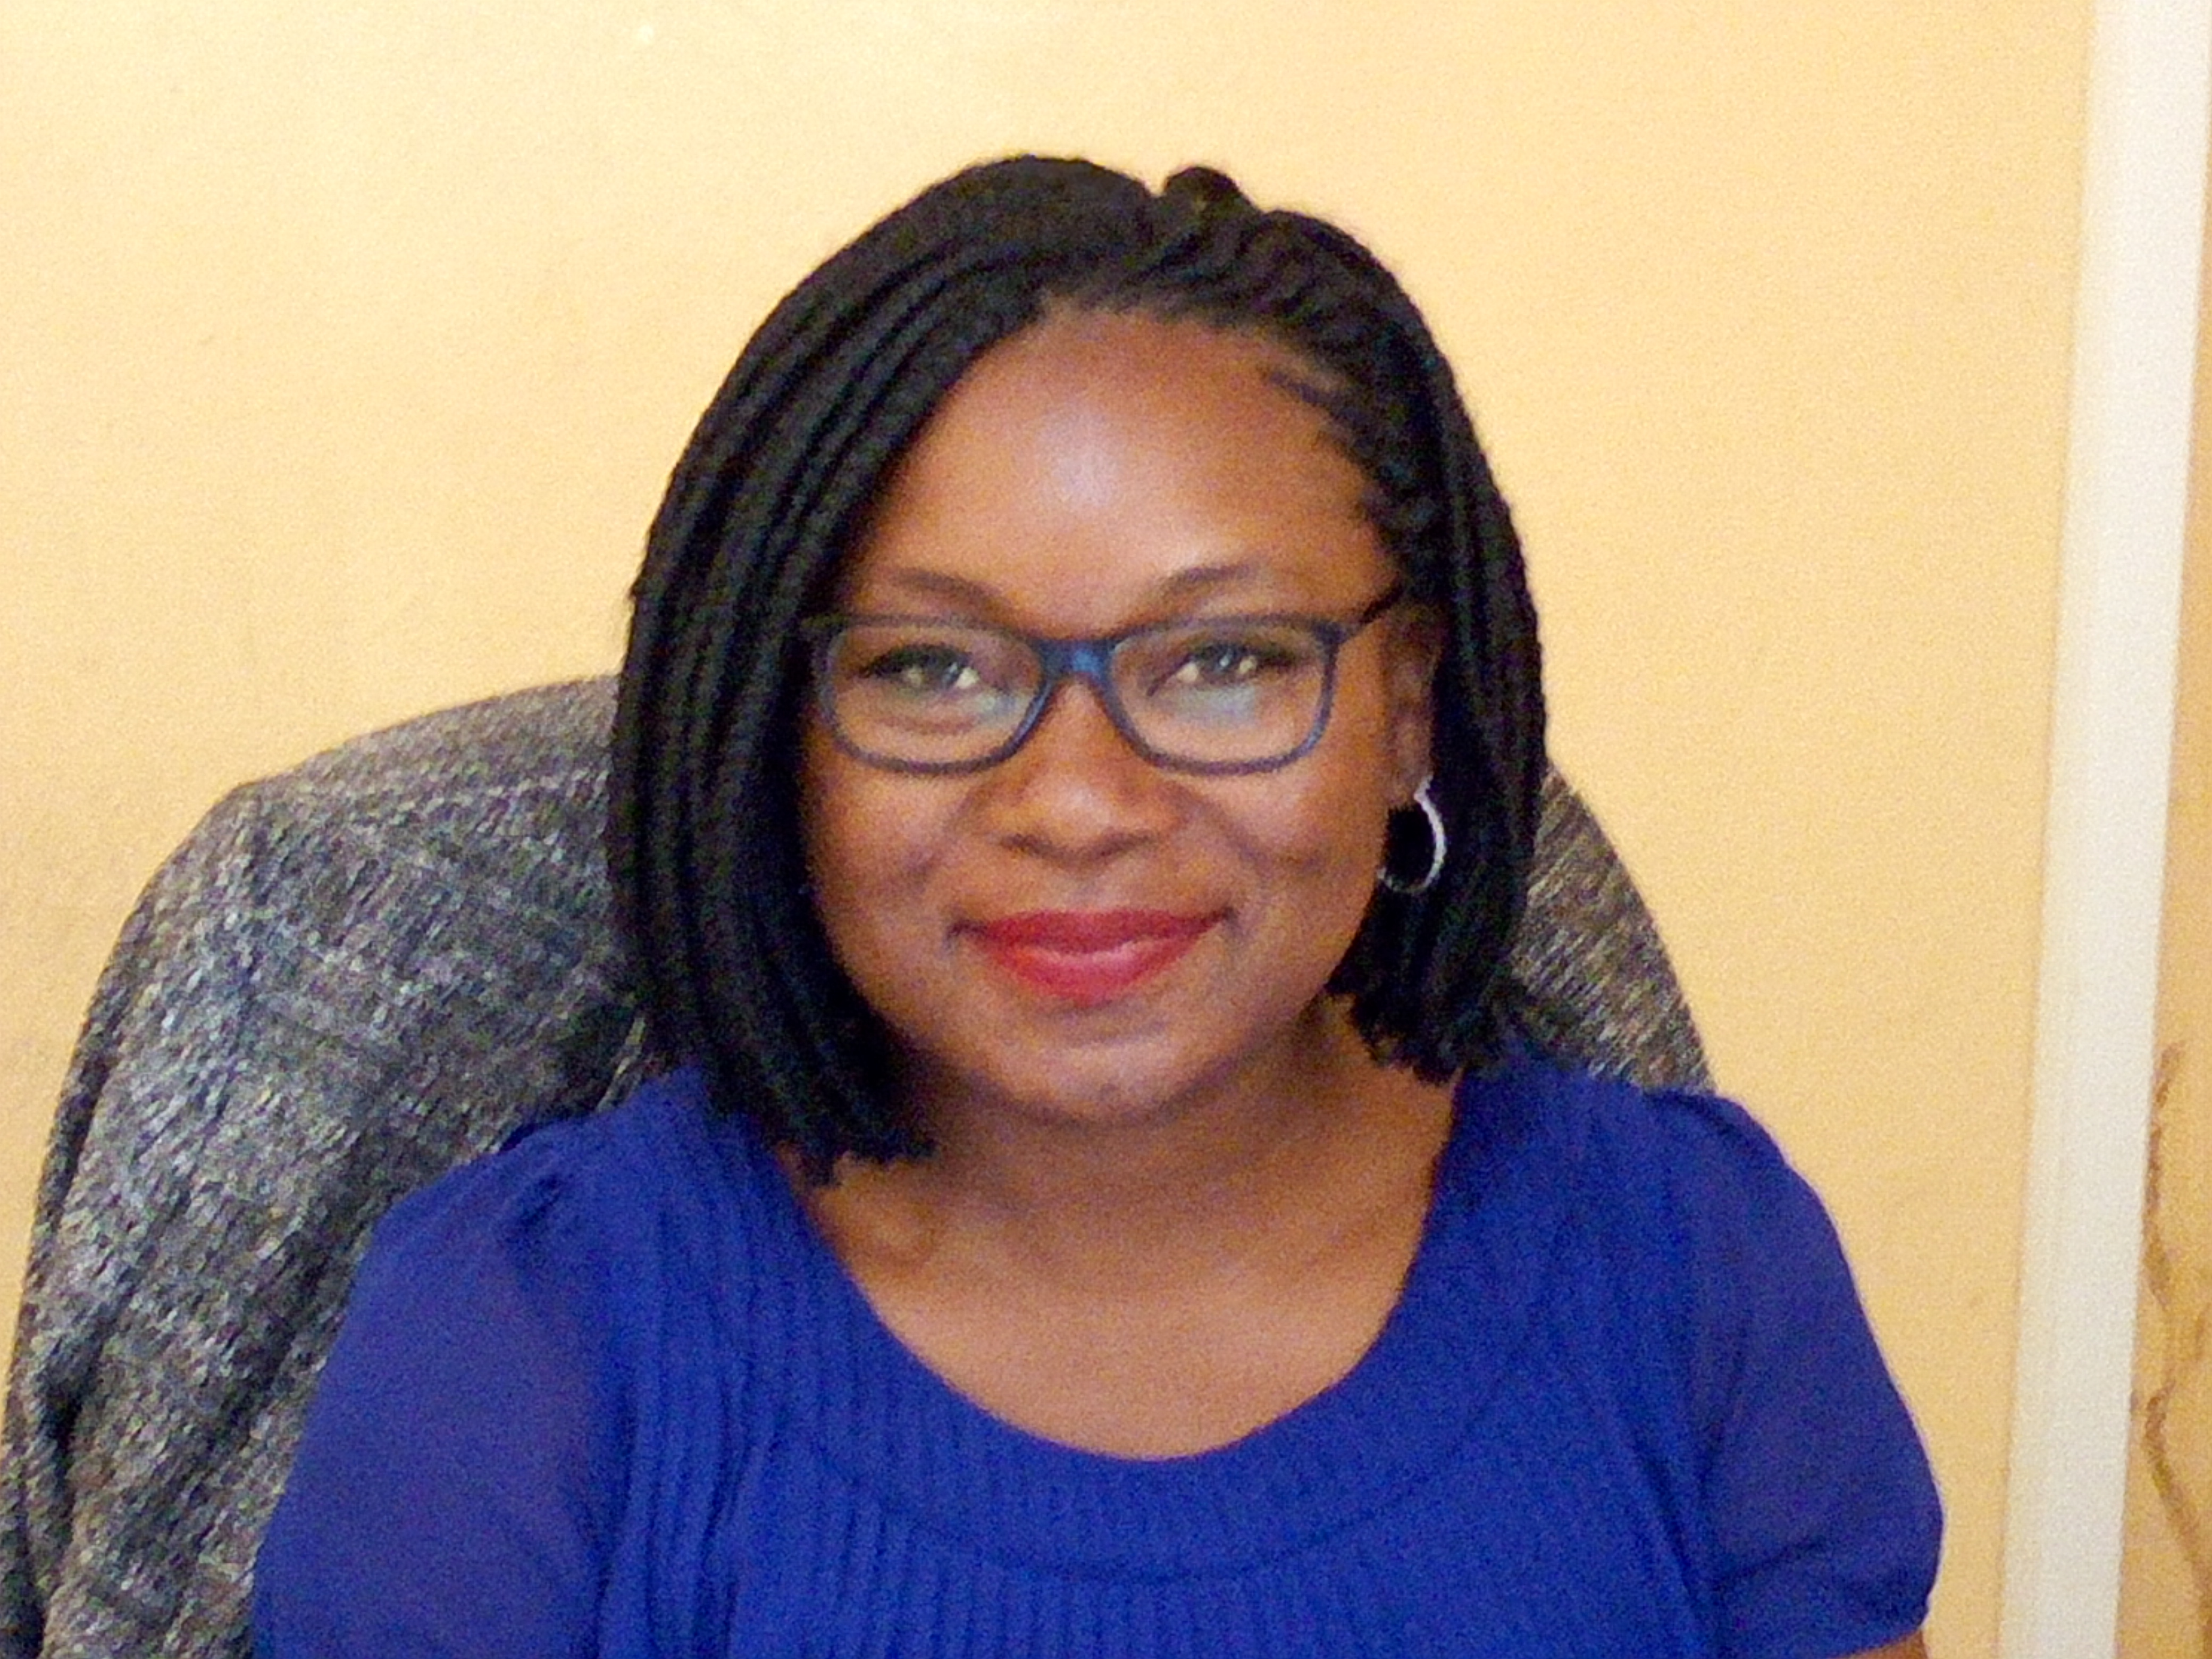 <a href='index.php?option=com_content&view=article&layout=edit&id=656'>Mrs Christable Ngongola Reinke</a>